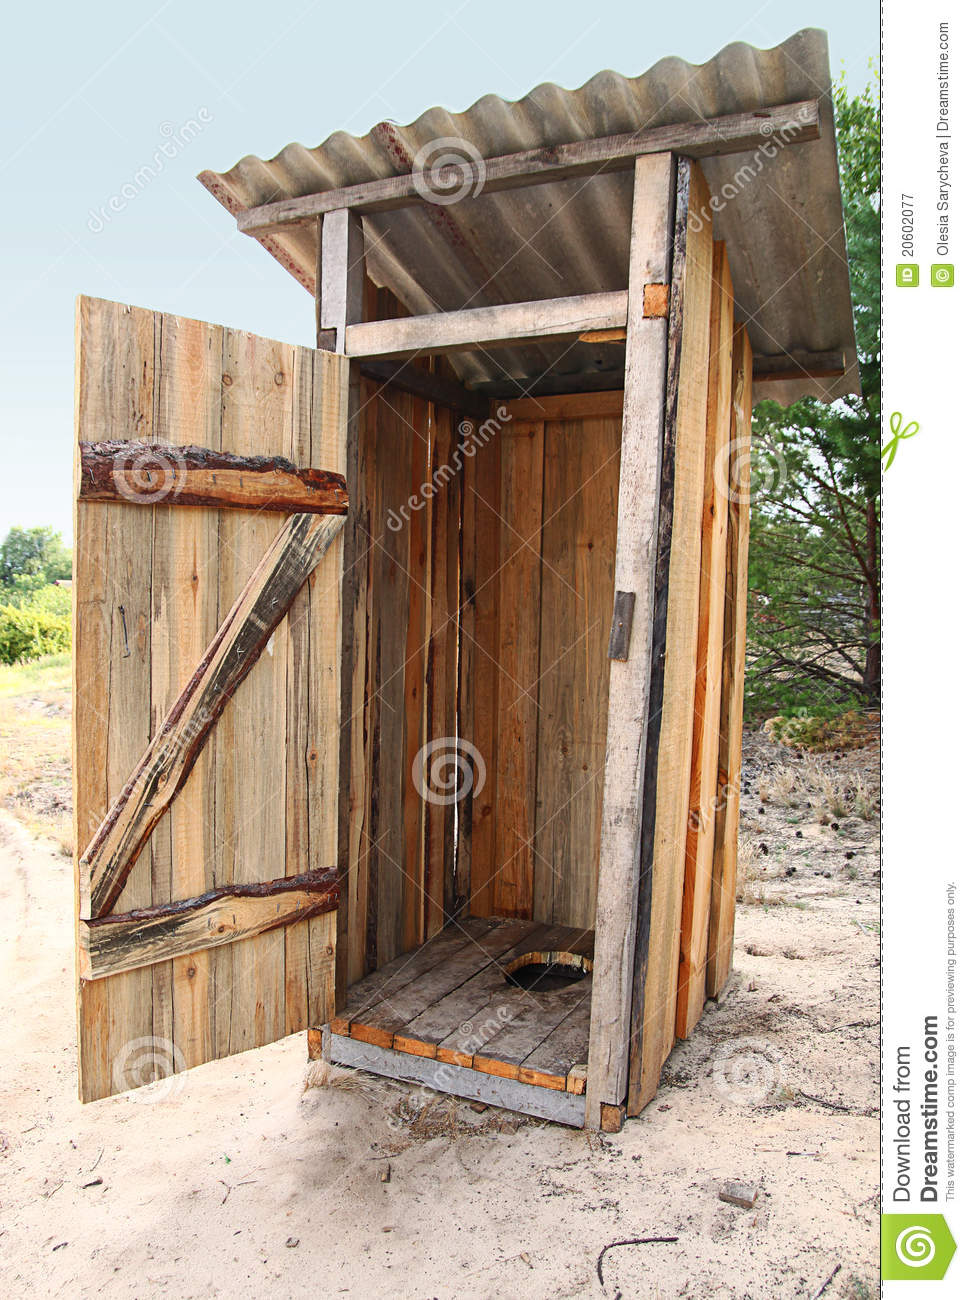 Tradtional Wooden Outside Toilet Royalty Free Stock